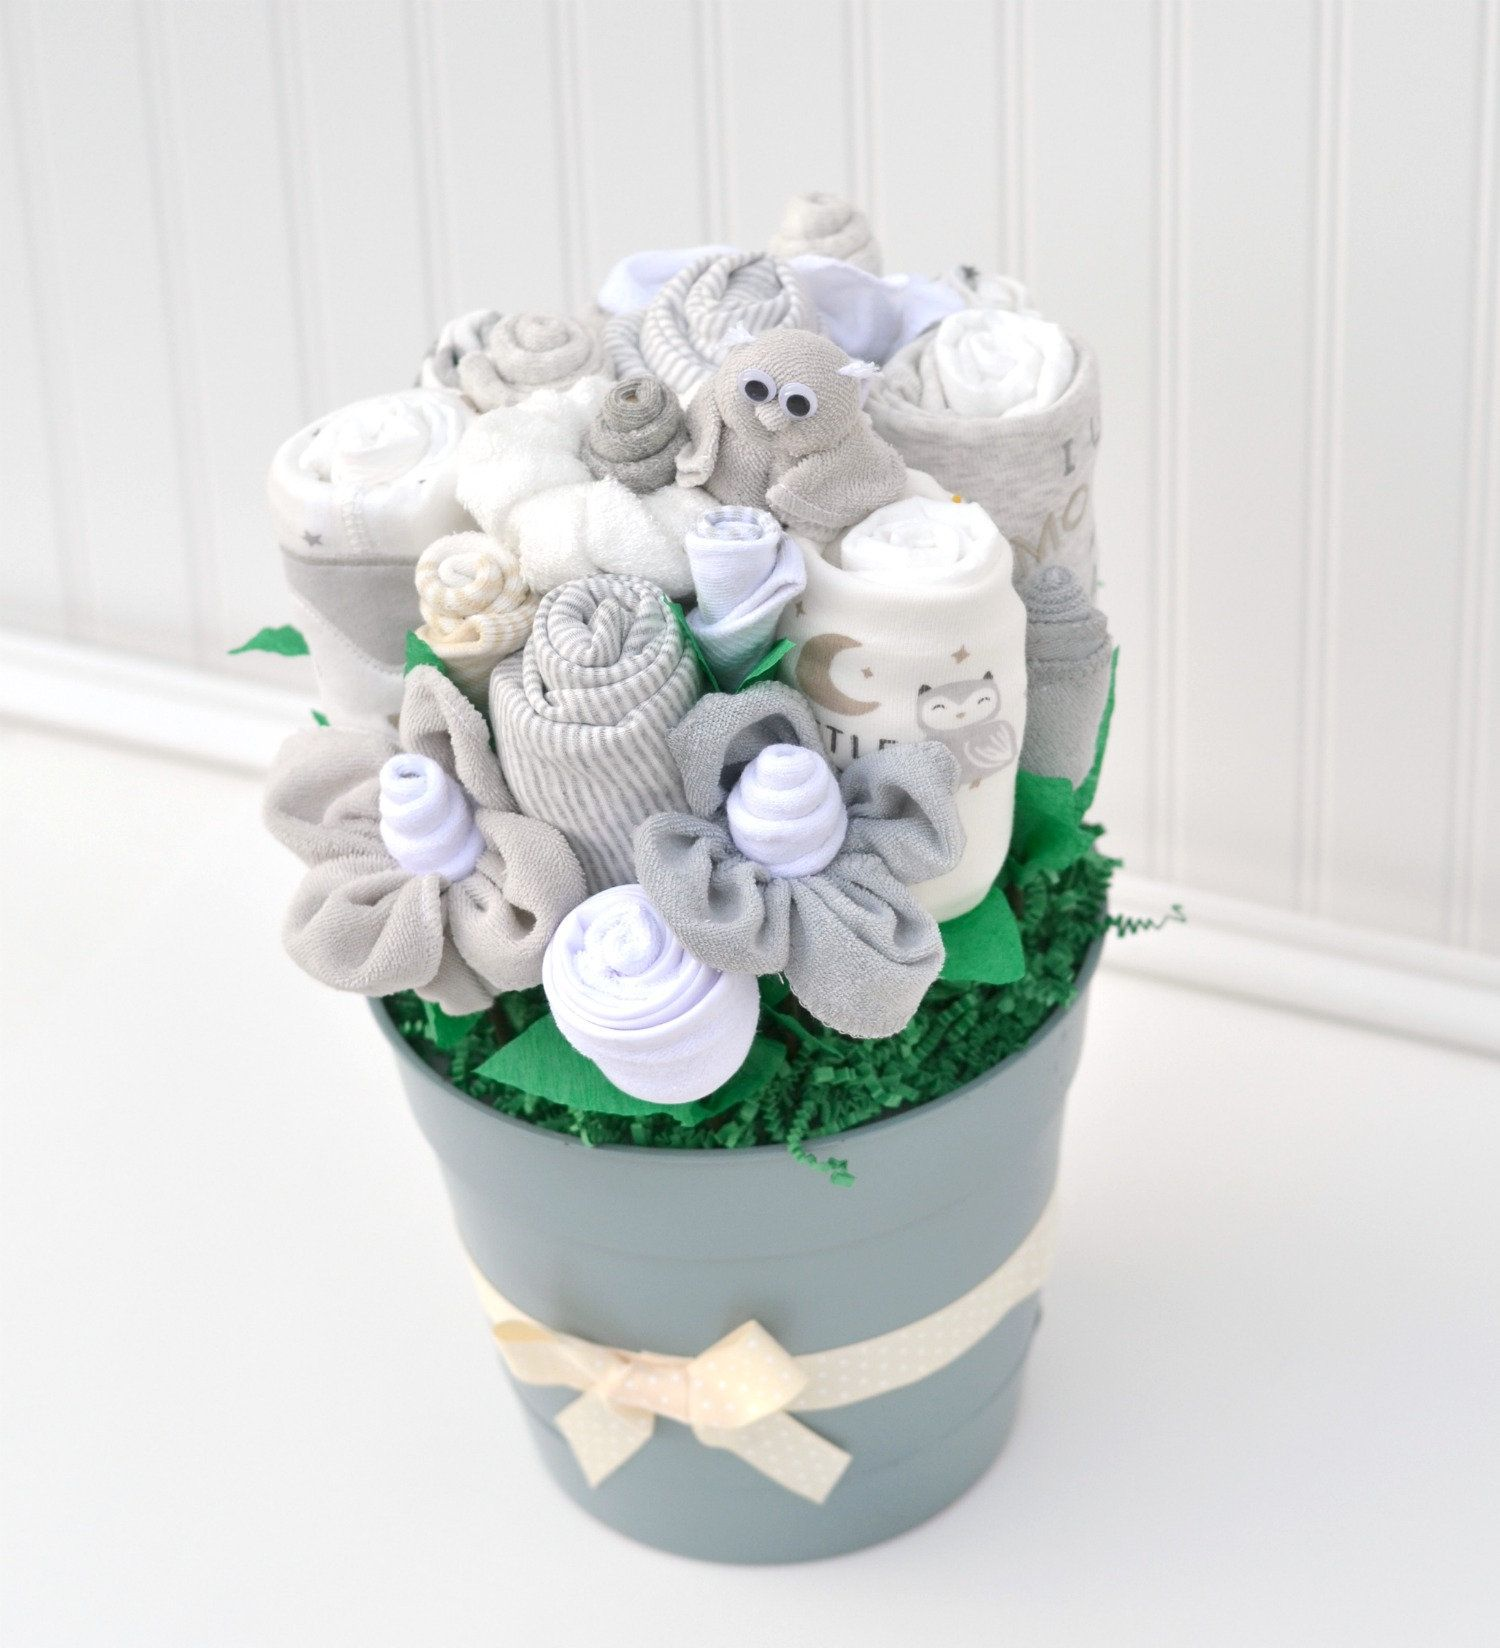 Unique idea for a gender neutral baby shower gift. Baby